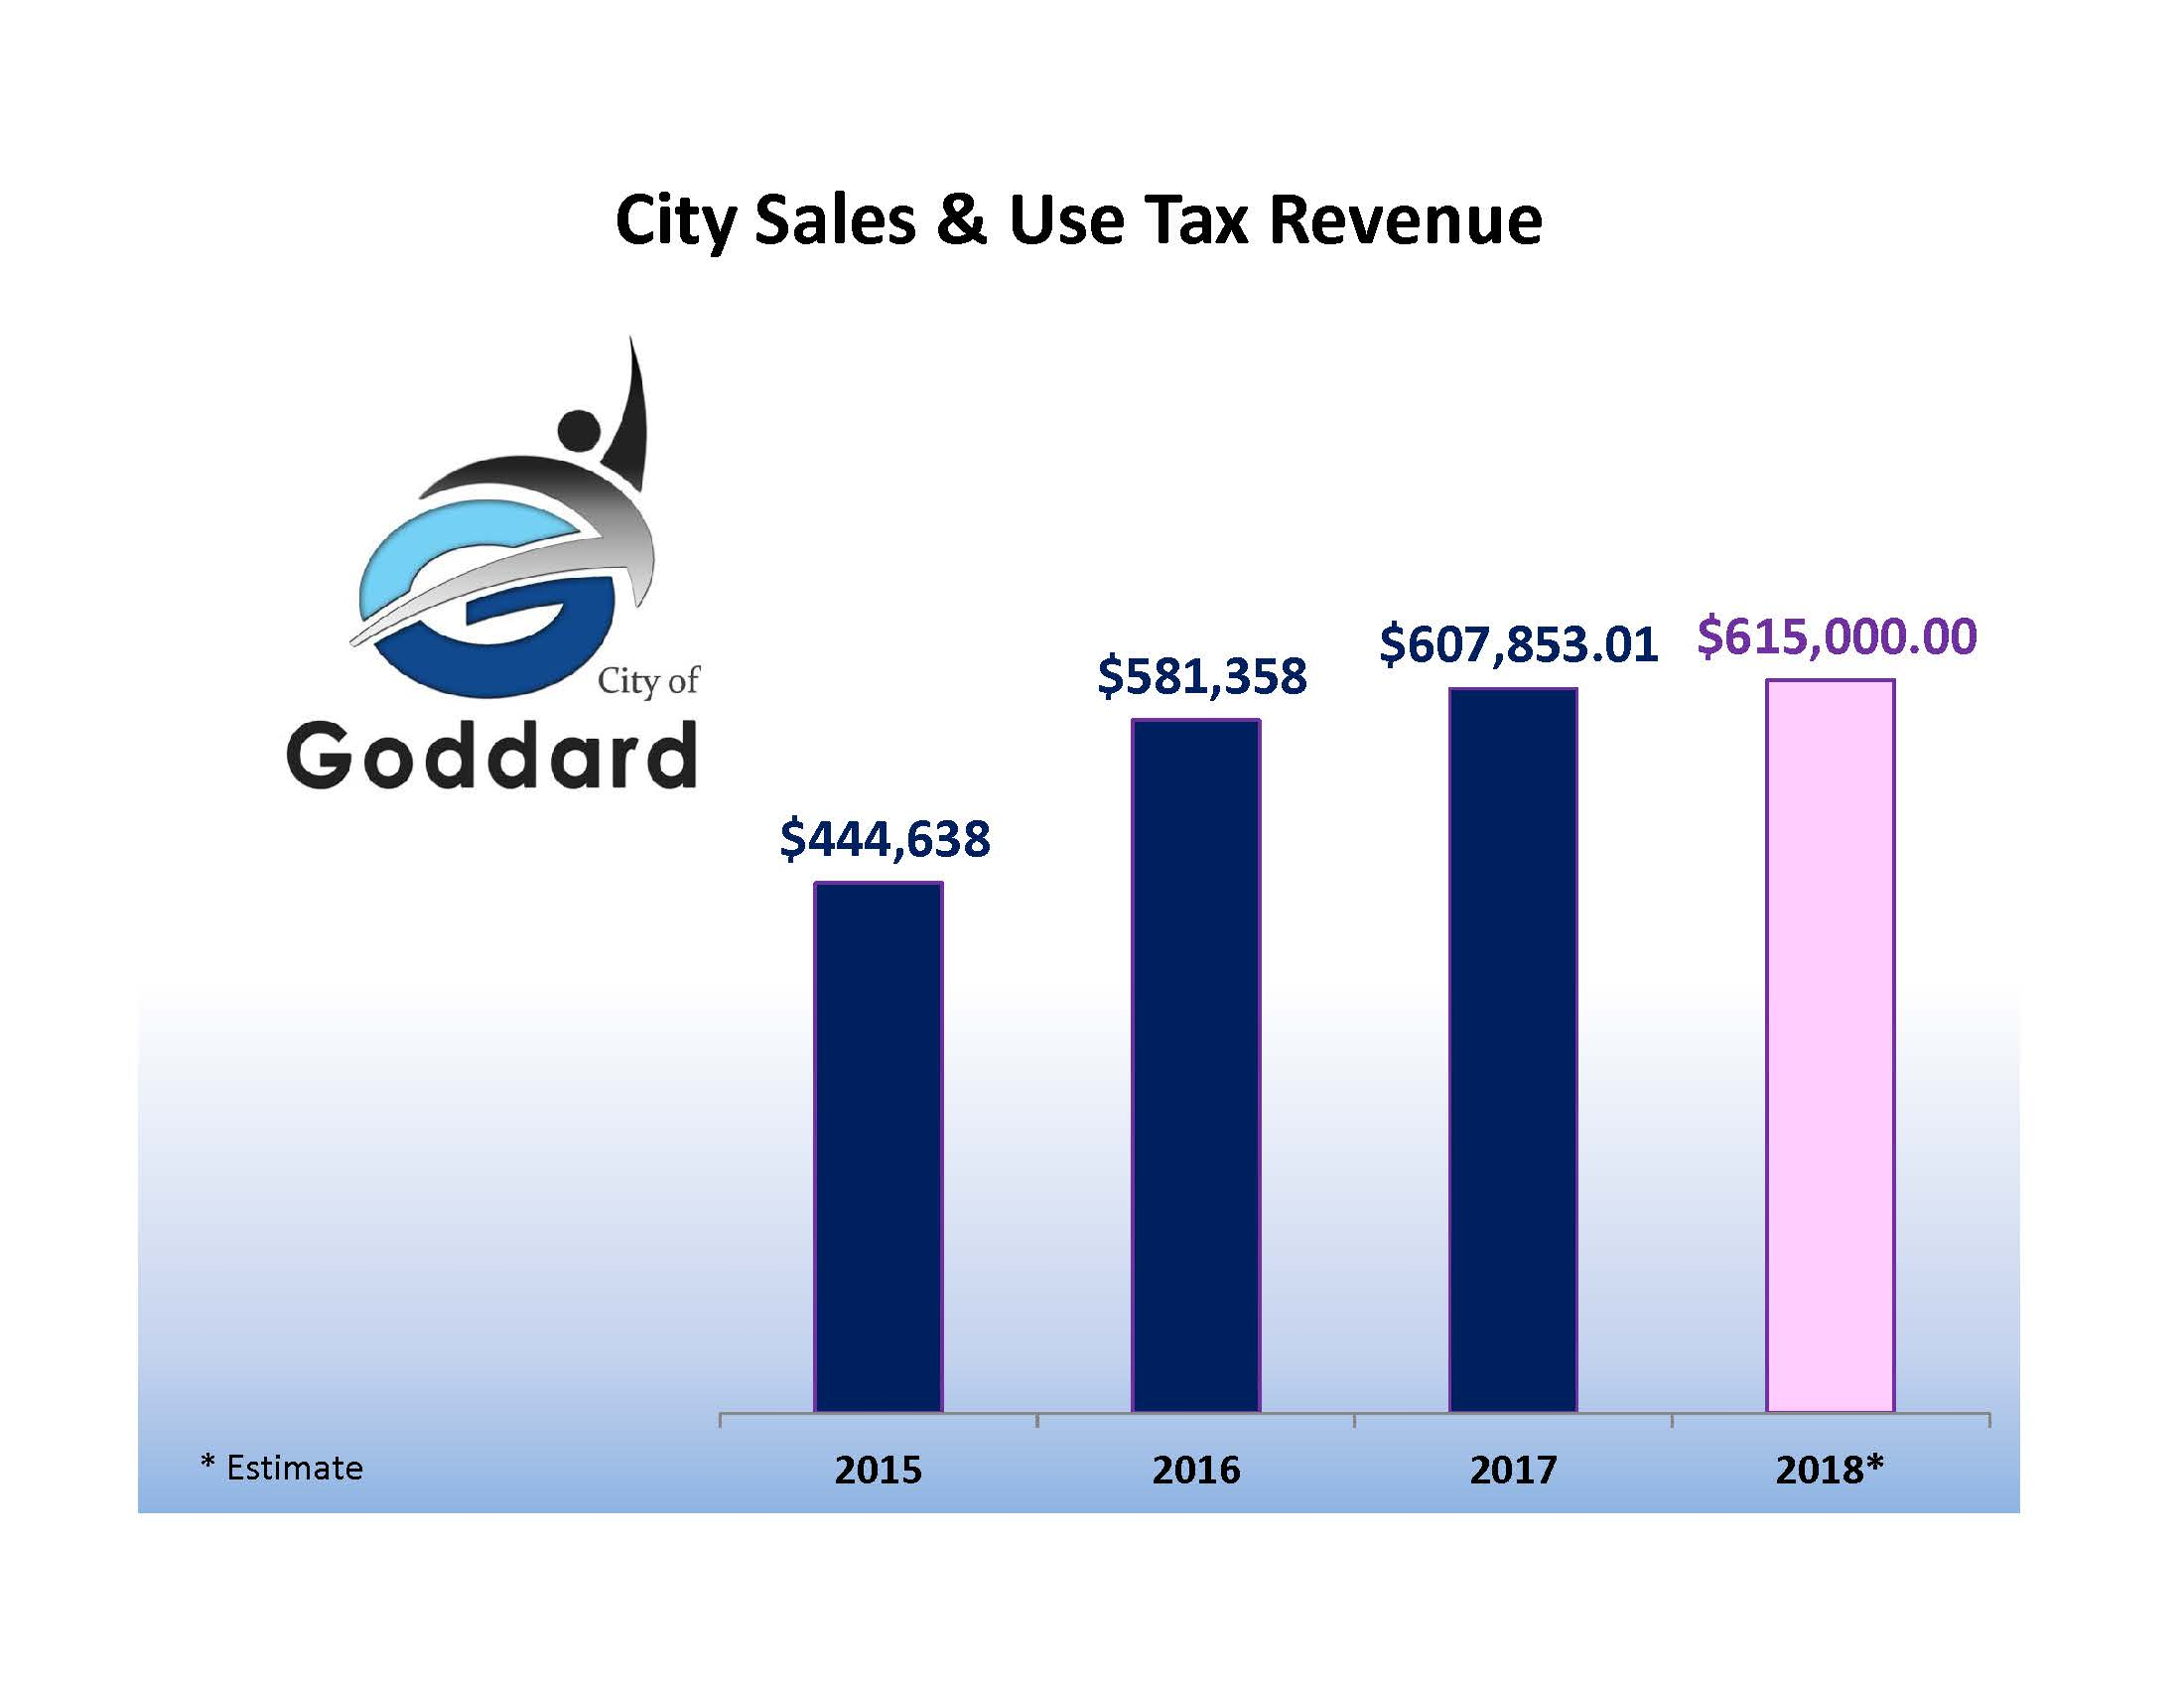 SALES TAX REVENUE